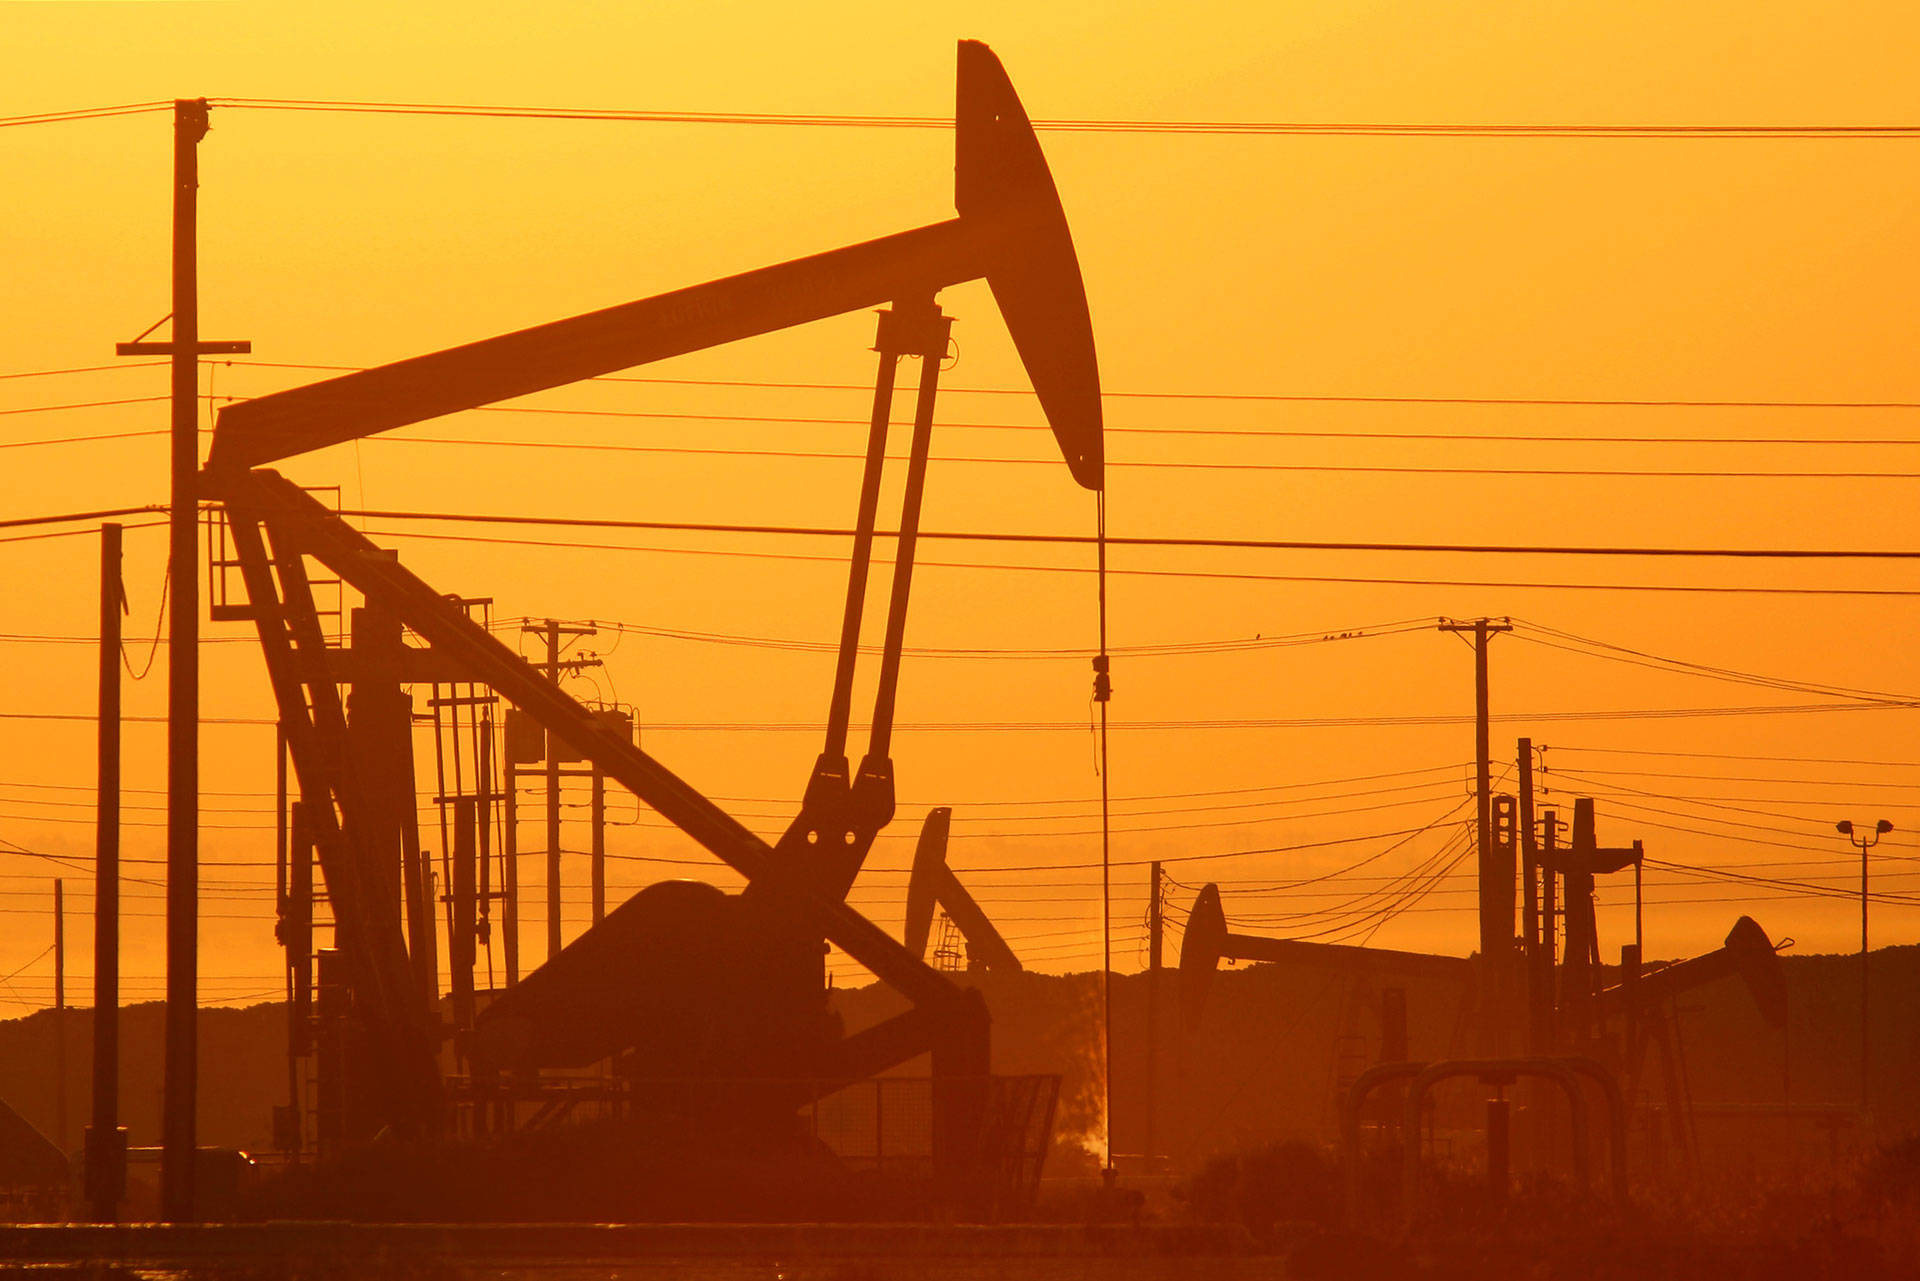 Donald Trump has pledged to increase oil and gas production on federal land. That could impact California, where 7 percent of oil wells are on federal land, according to the BLM. Five of the 10 most productive oil fields in the U.S. are in California, mostly in Kern County. These pumpjacks and wells are in an oil field on the Monterey Shale formation near Lost Hills, in Kern County.  David McNew/Getty Images